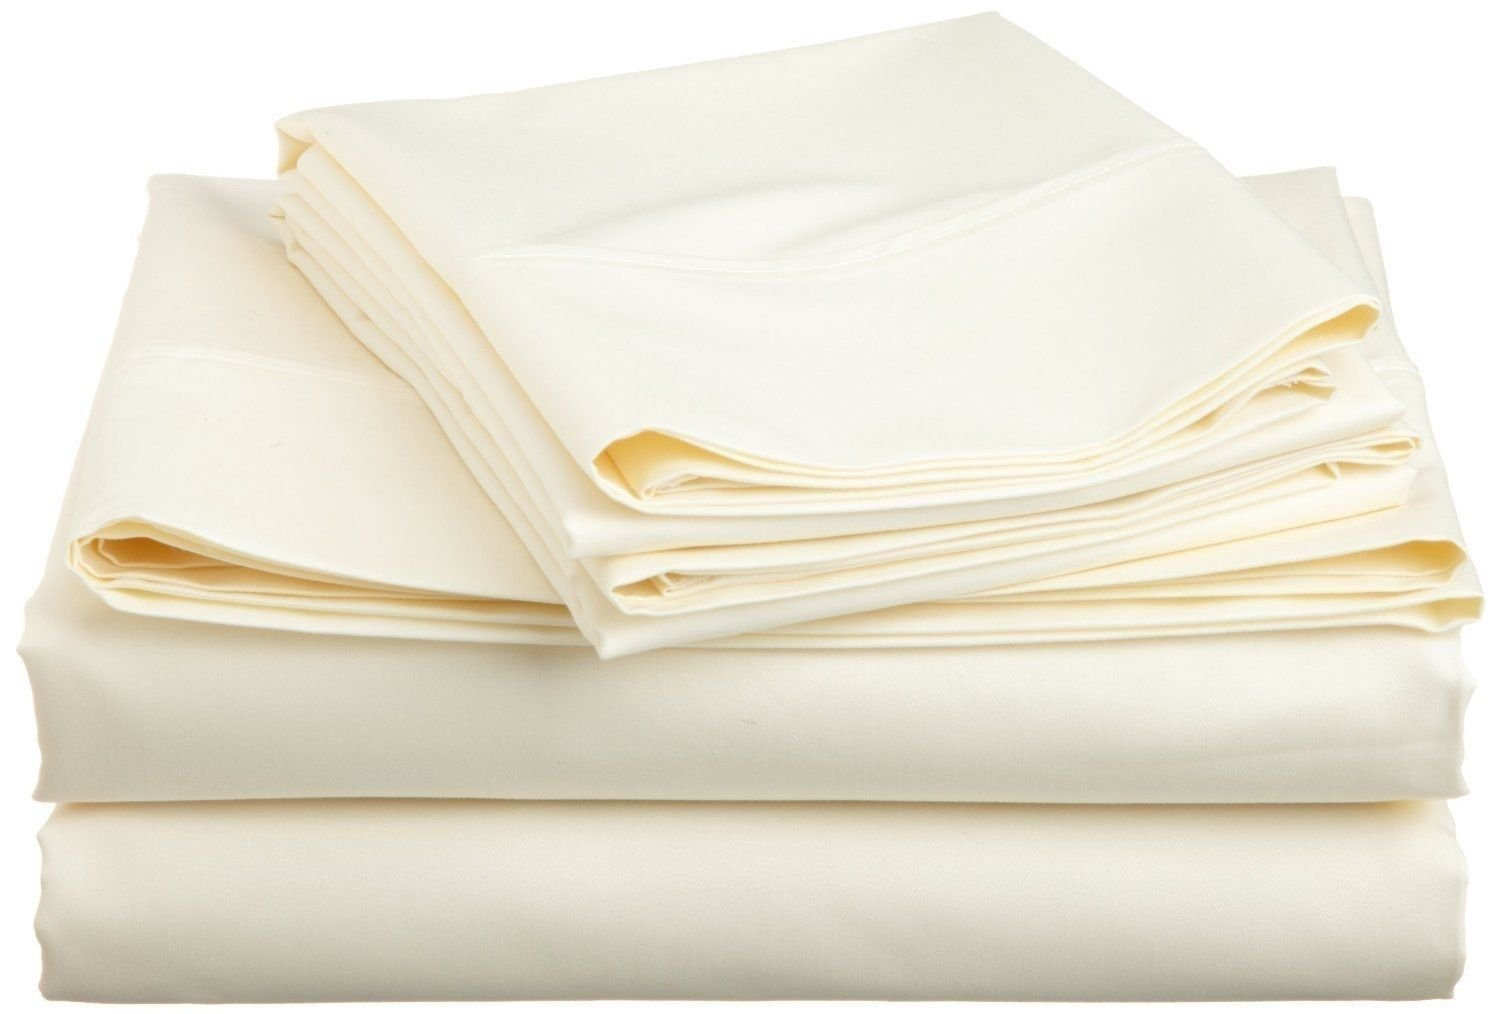 Hotel Quality JB Linen 500-Thread-Count Pure Egyptian Cotton Super Soft 1 PC Flat Sheet/Top Sheet California King Solid Ivory With Wholesale Price